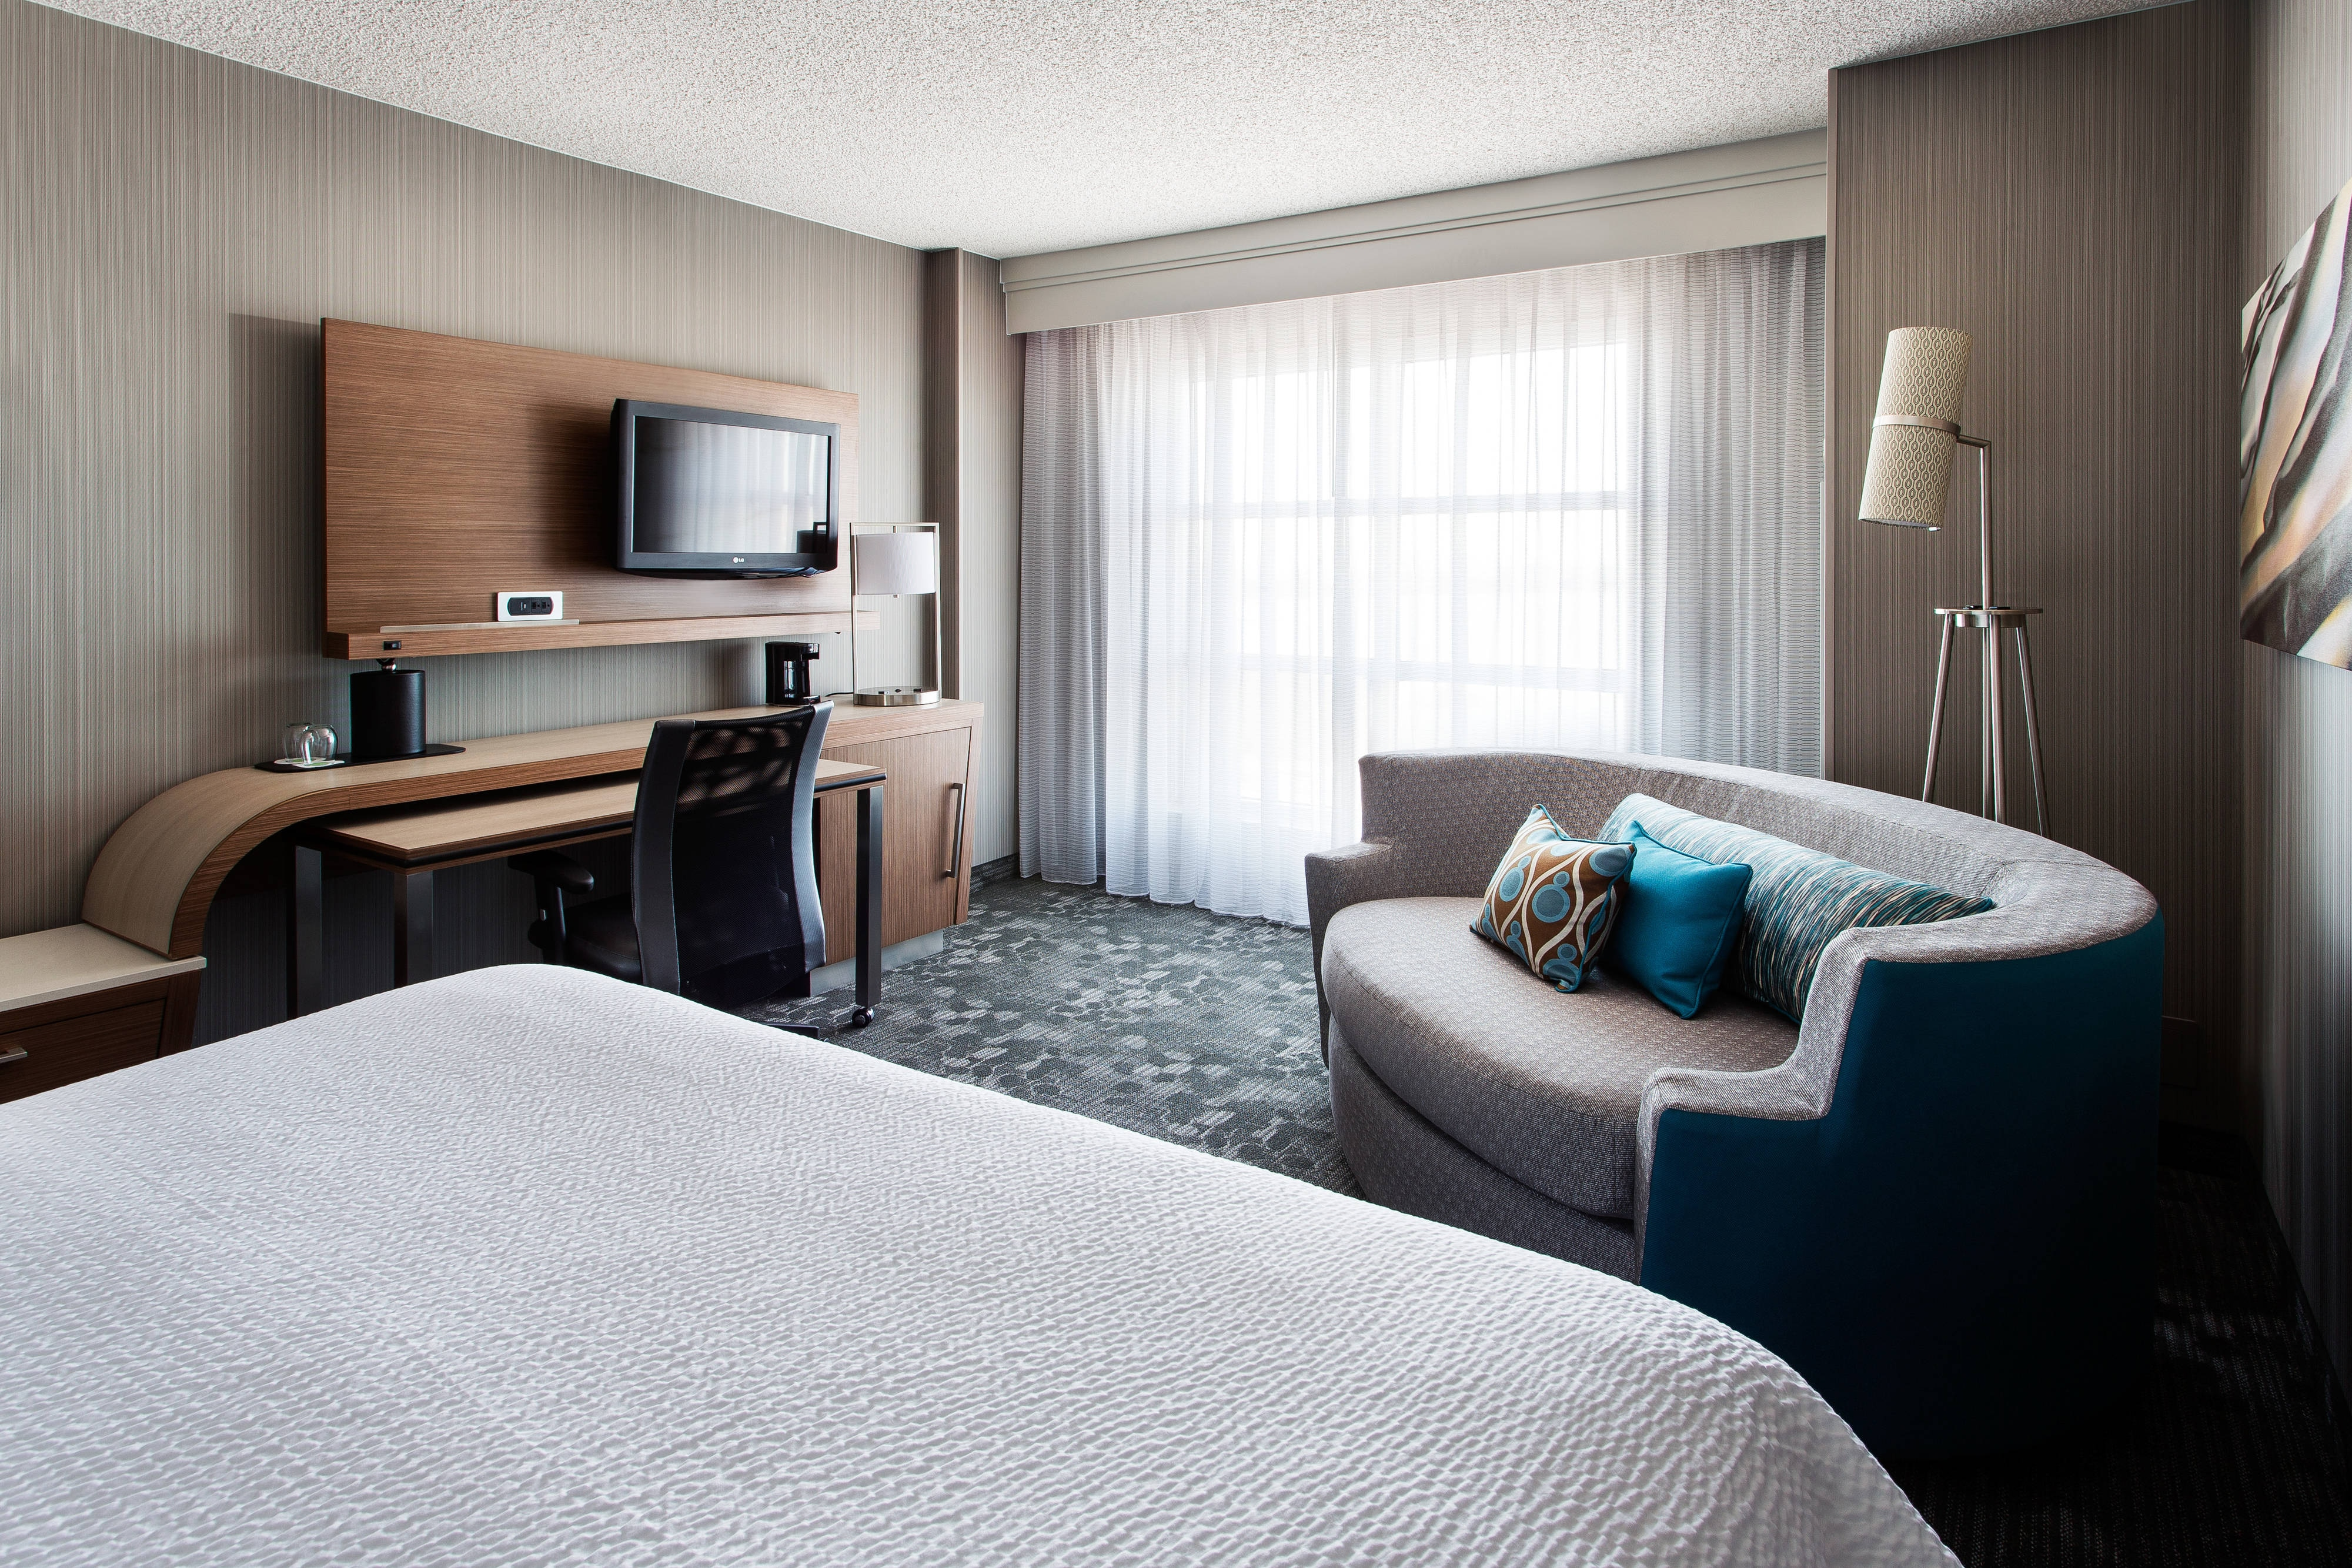 Discover A Refreshing Stay At Our Rooms In Emeryville